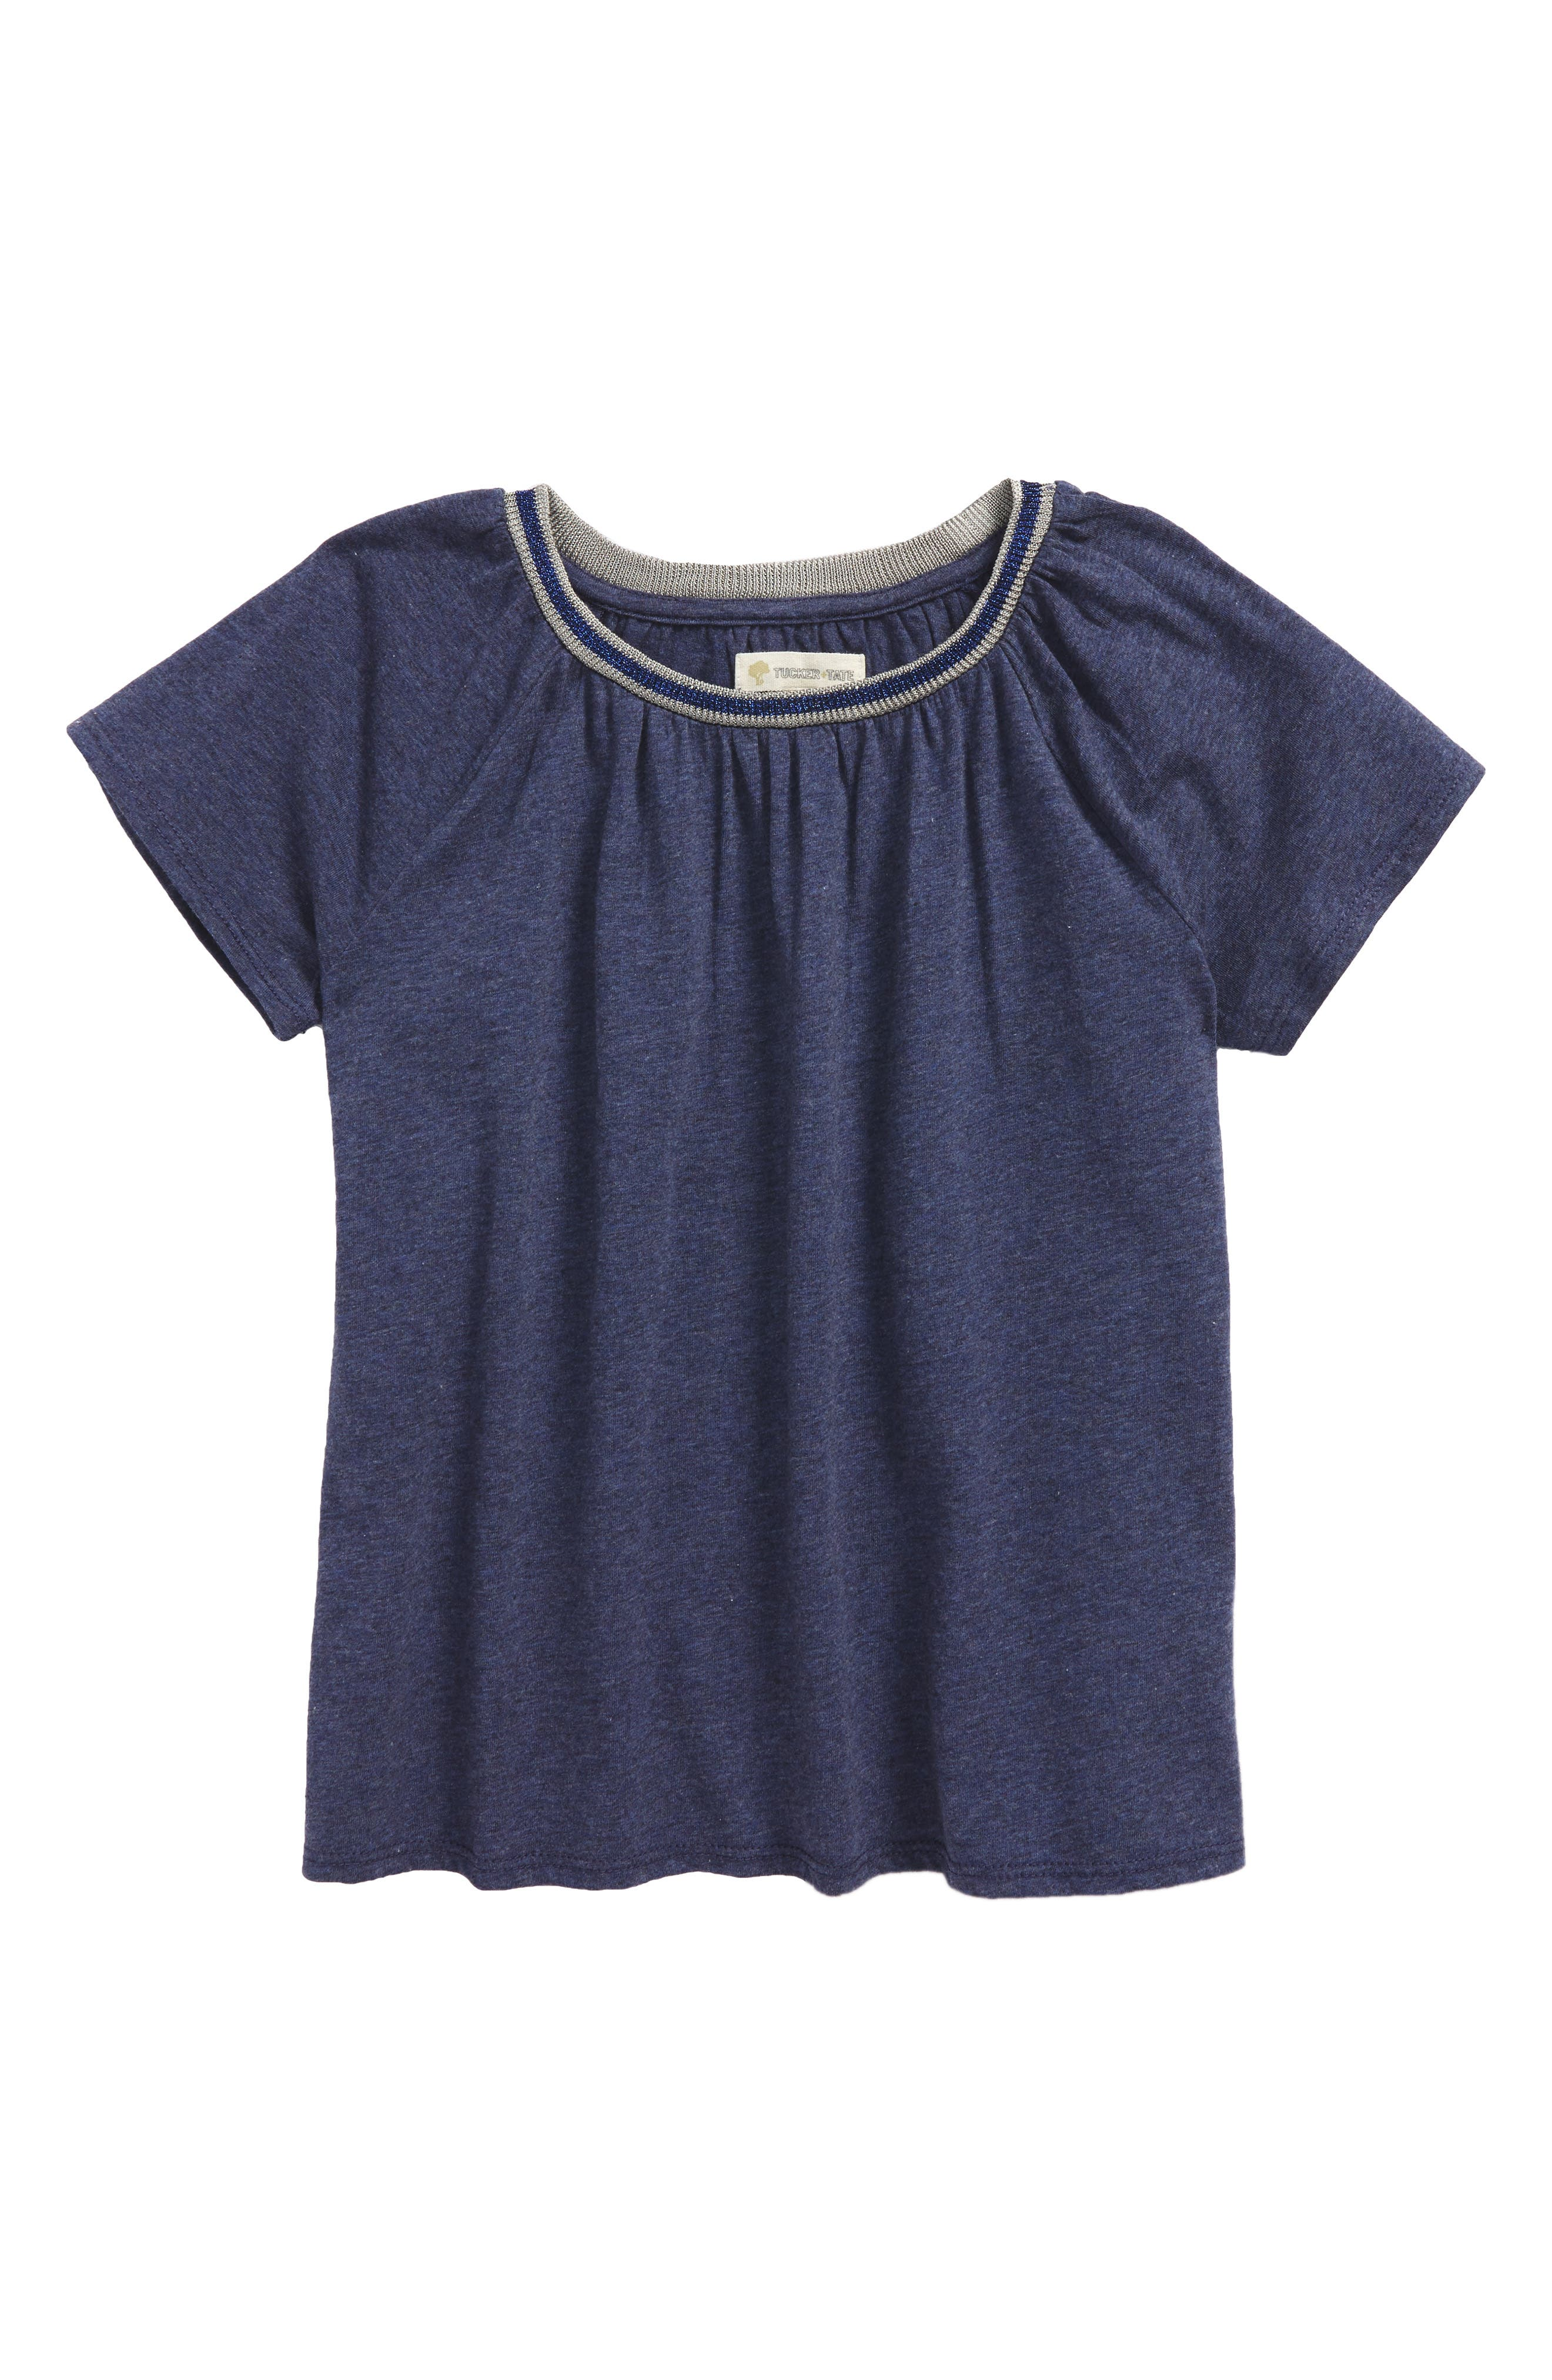 Essential Tee,                         Main,                         color, 410